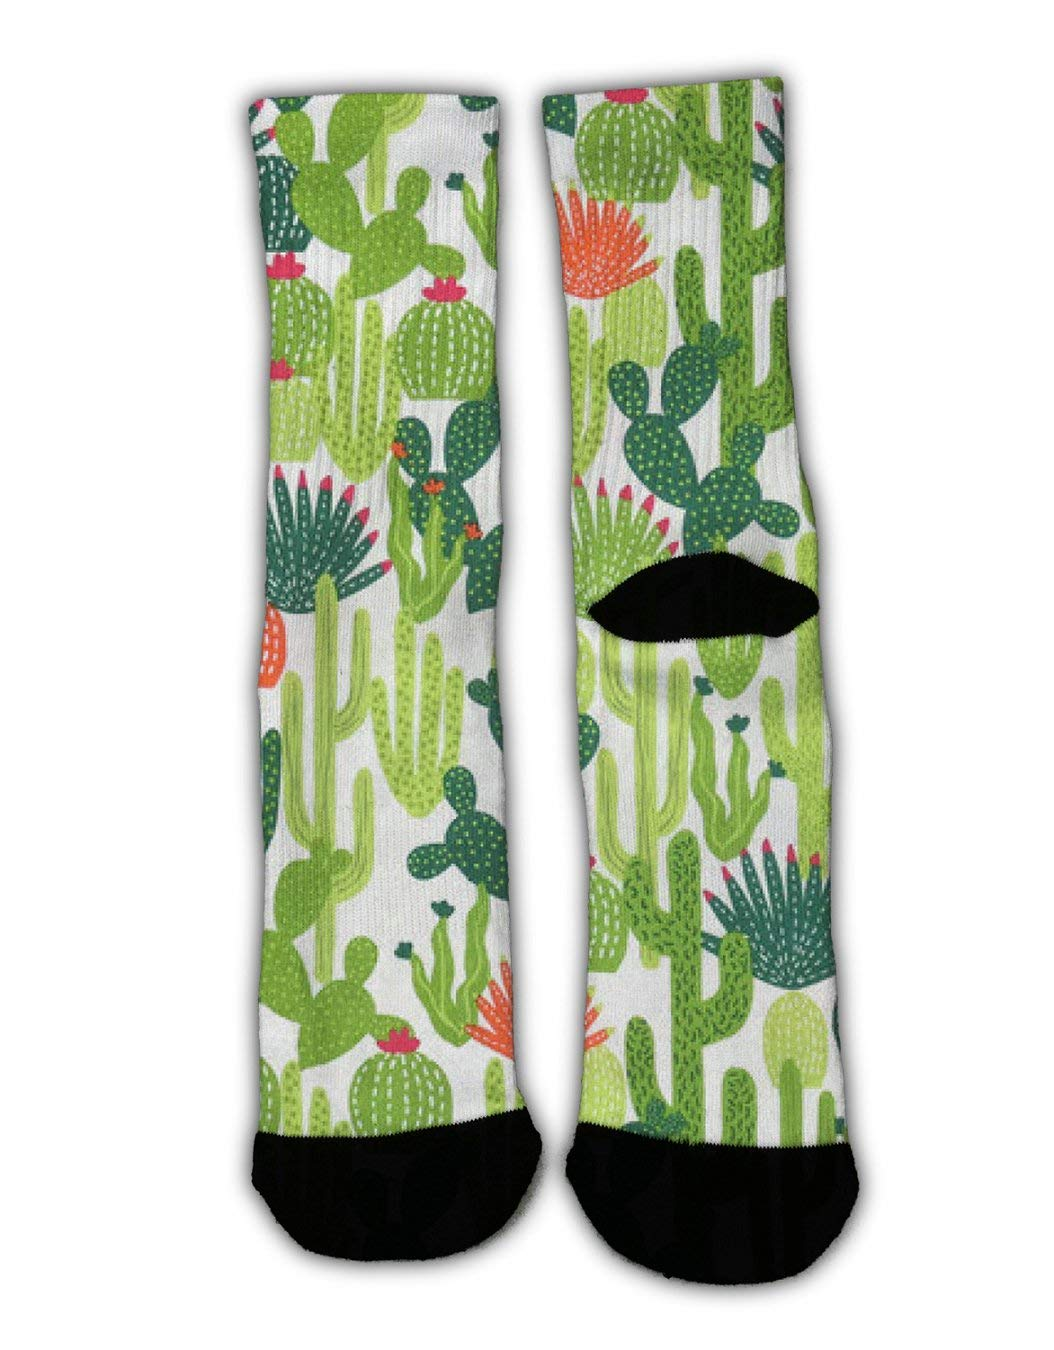 YEAHSPACE Boys Girls Wilder California Cactus Dress Socks Funny Colorful Cool Crew Socks for Teen Christmas Holiday Cotton Cozy Warm Socks Winter Gifts